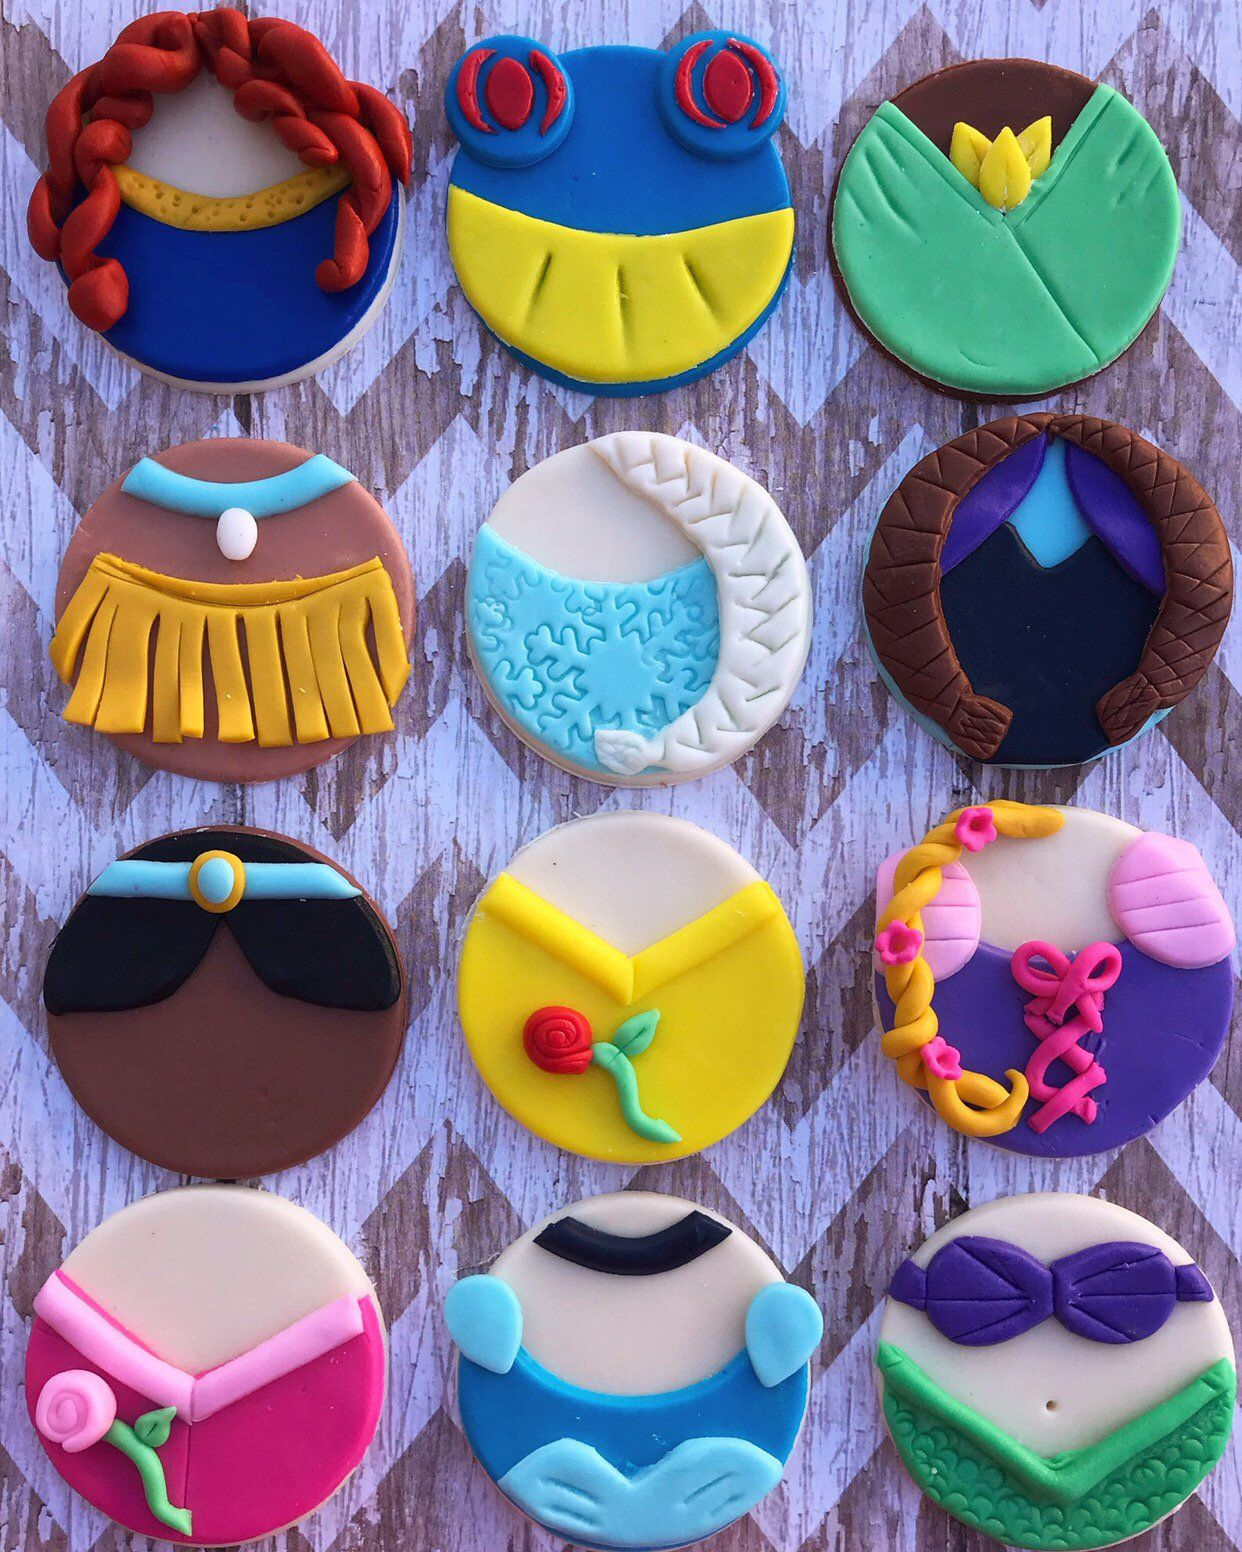 12 Fondant Disney princess inspired cupcake toppers frozen beauty and the beast cinderella ariel #fondant